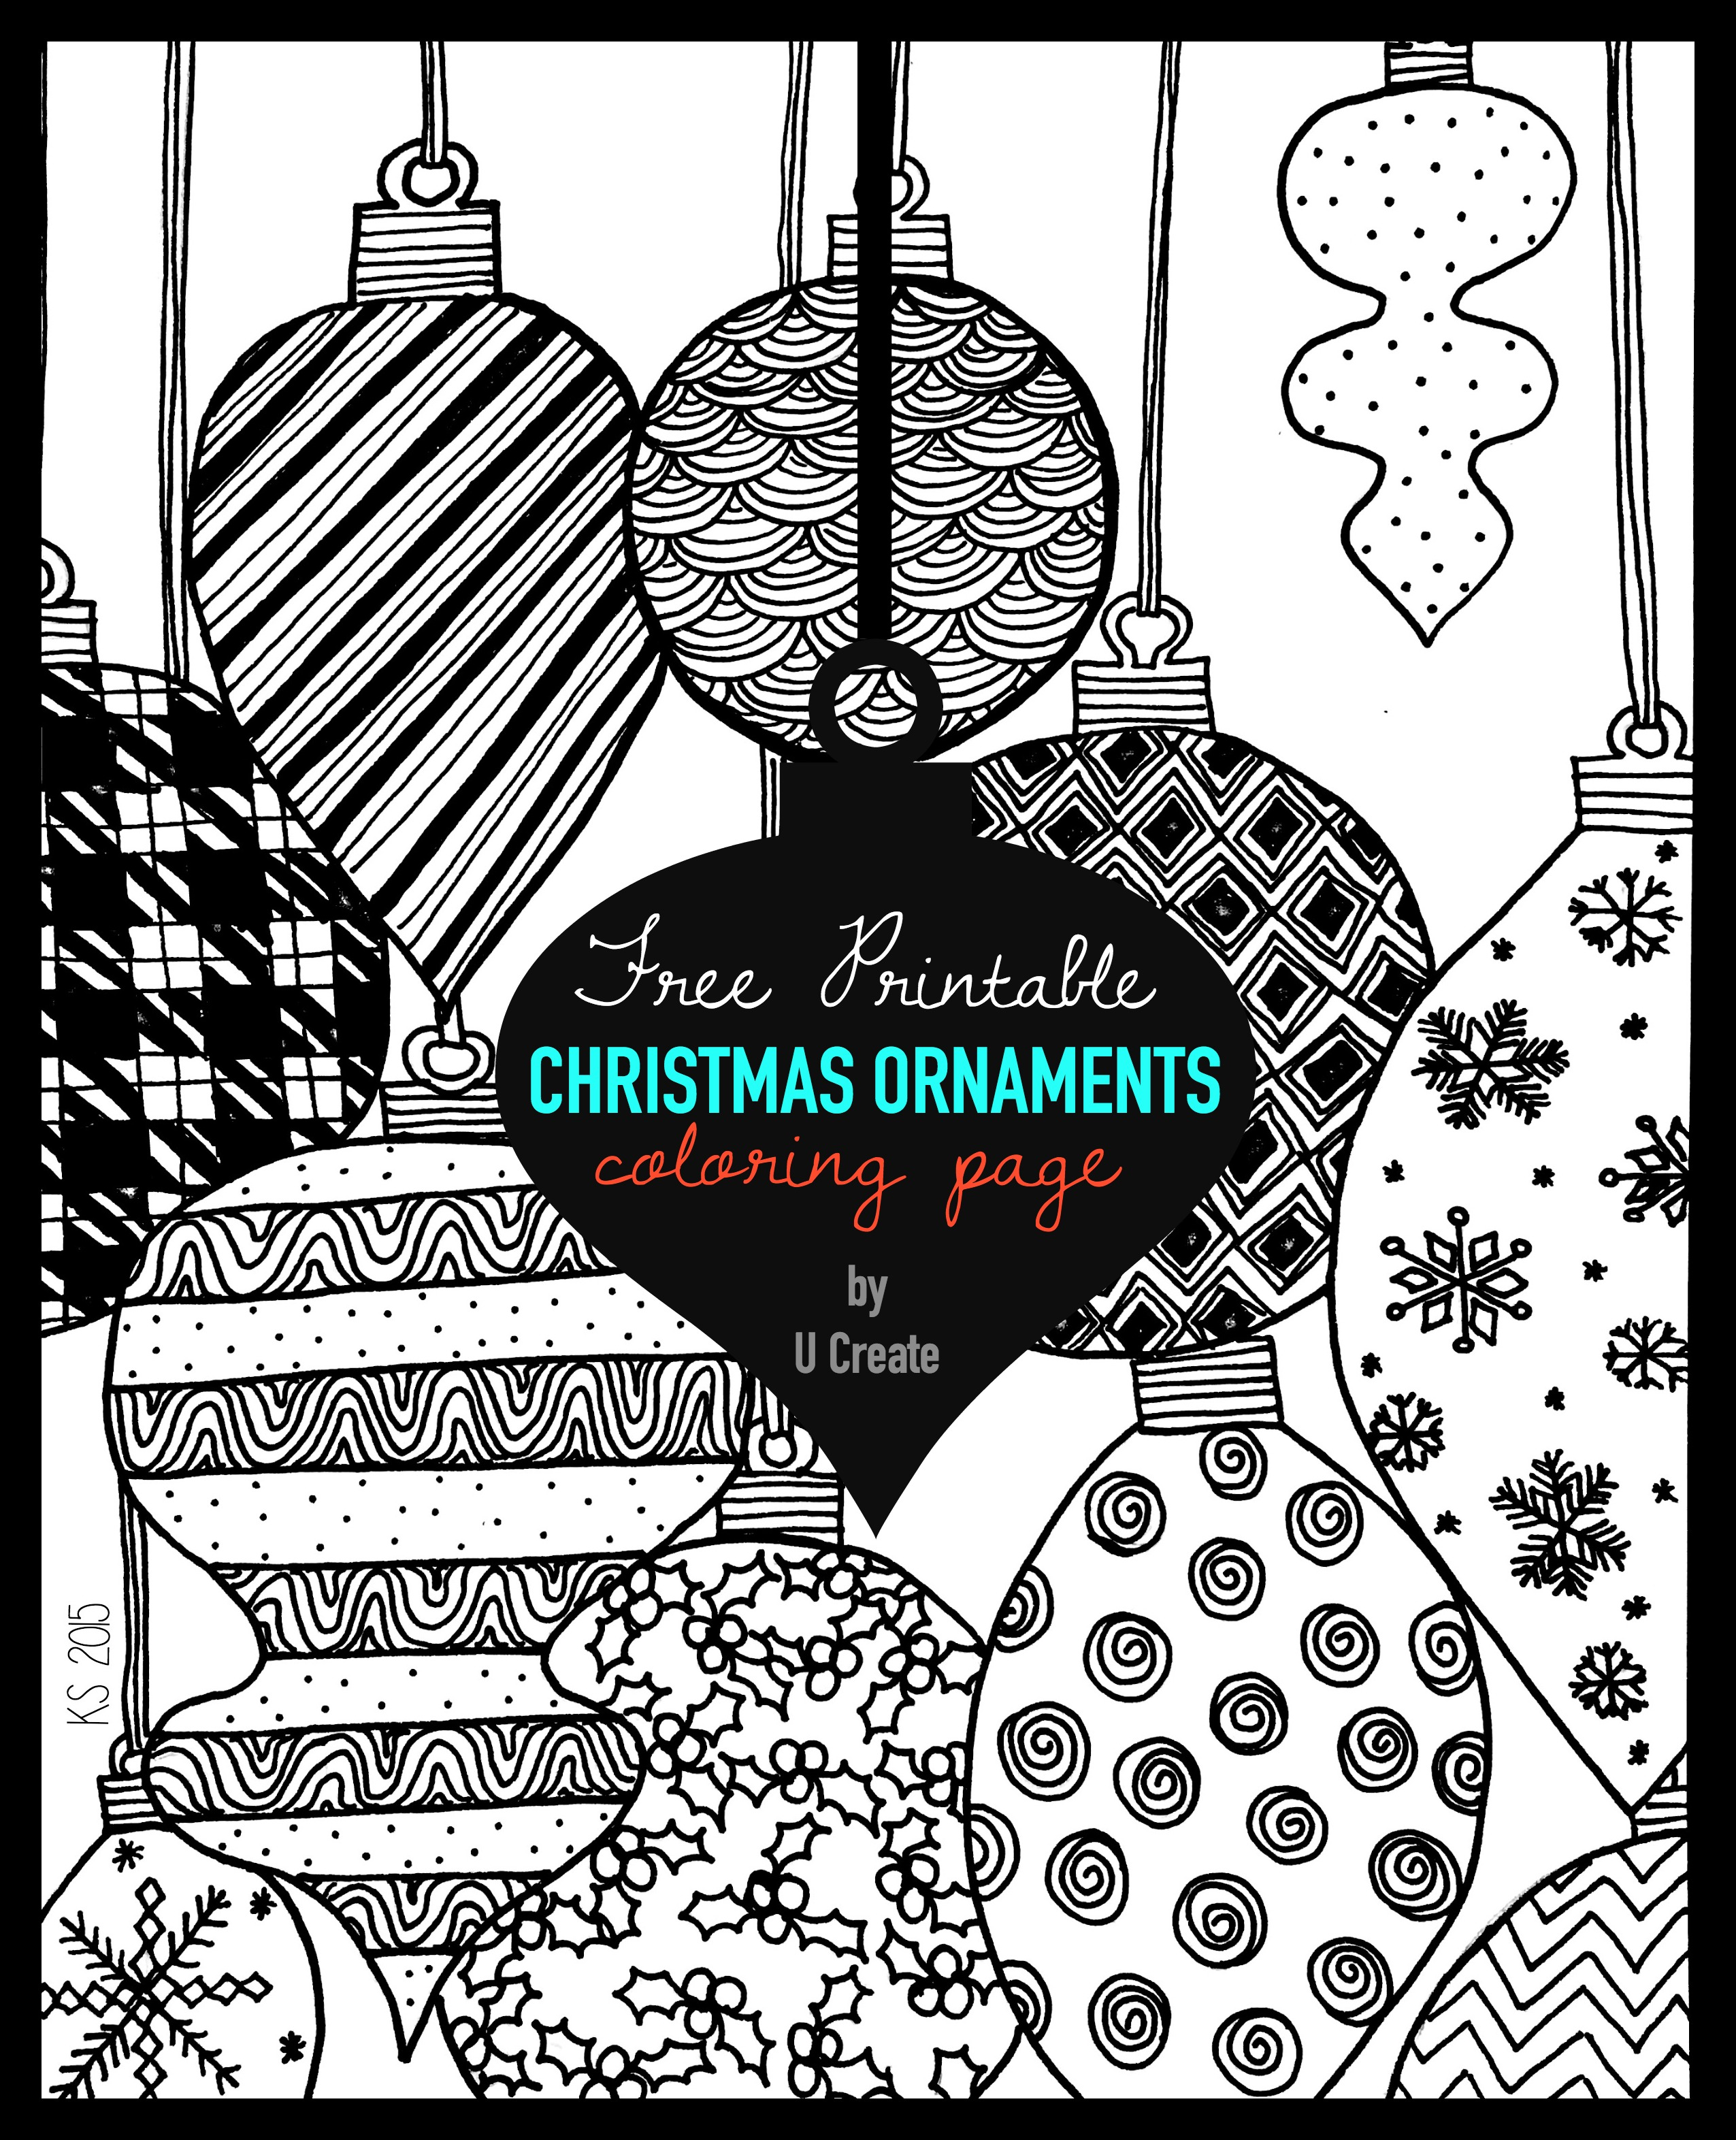 Christmas Coloring Pages For Adults Free Printable With Ornaments Adult Page U Create